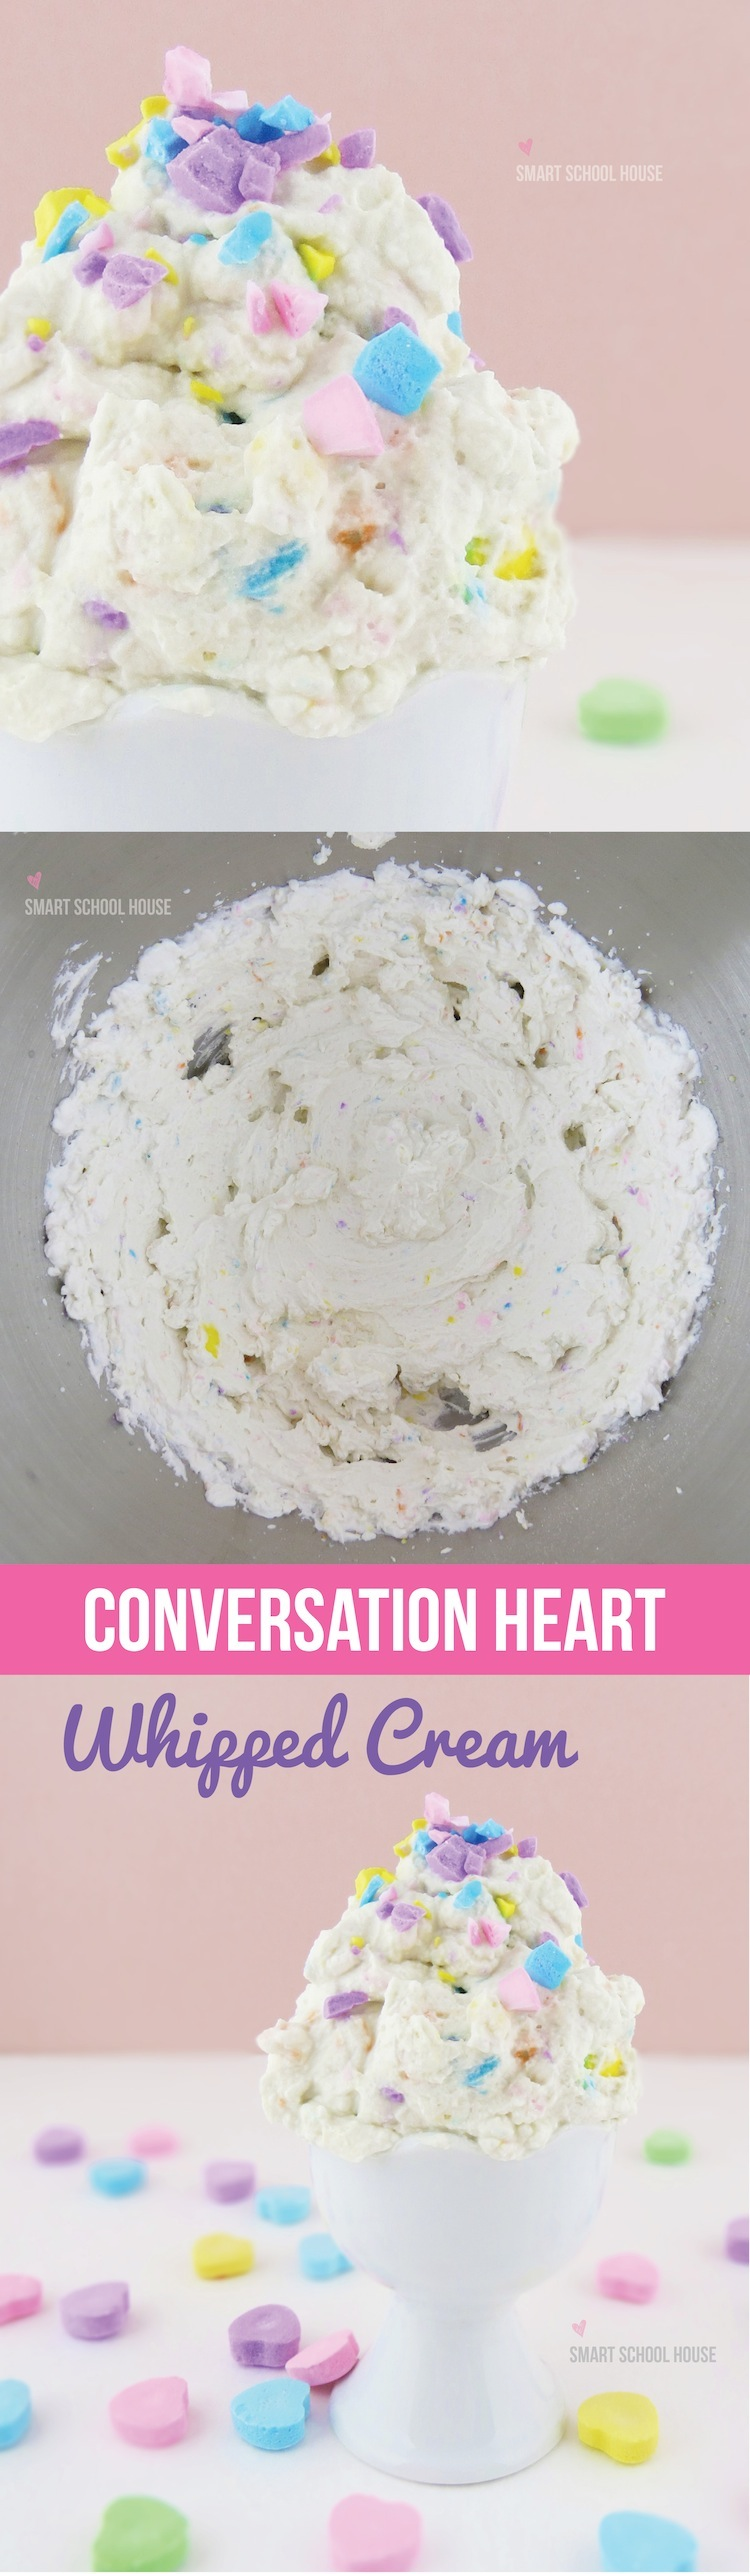 How to Make Conversation Heart Whipped Cream